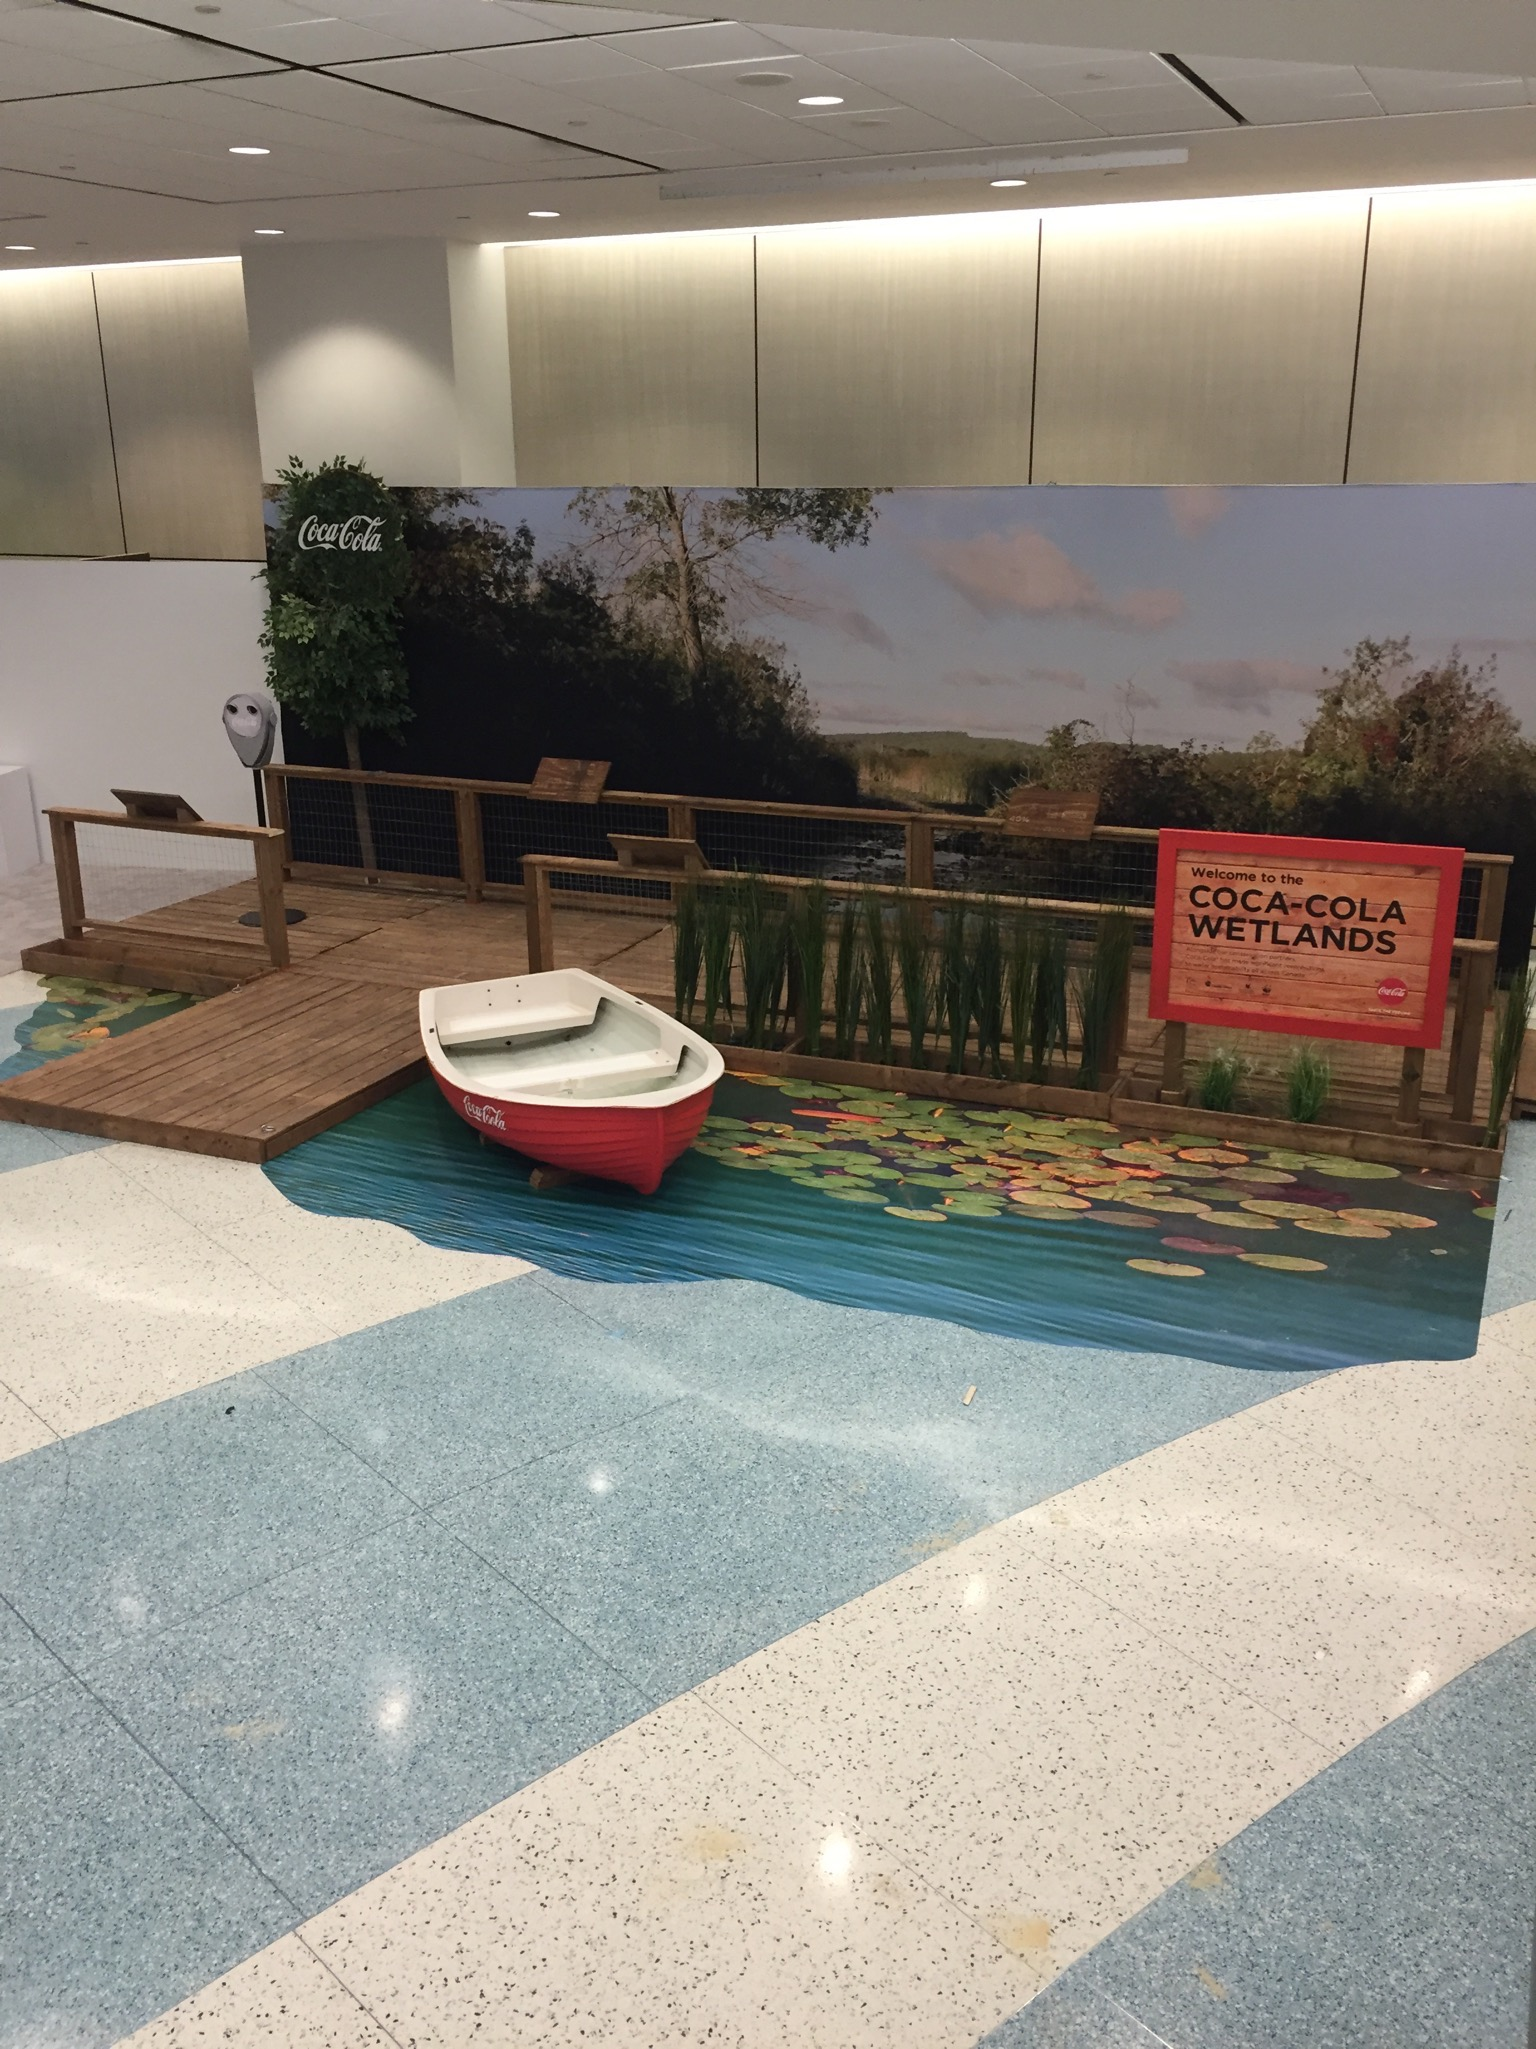 Coke Wetlands: custom-built space with backdrop and floor graphic